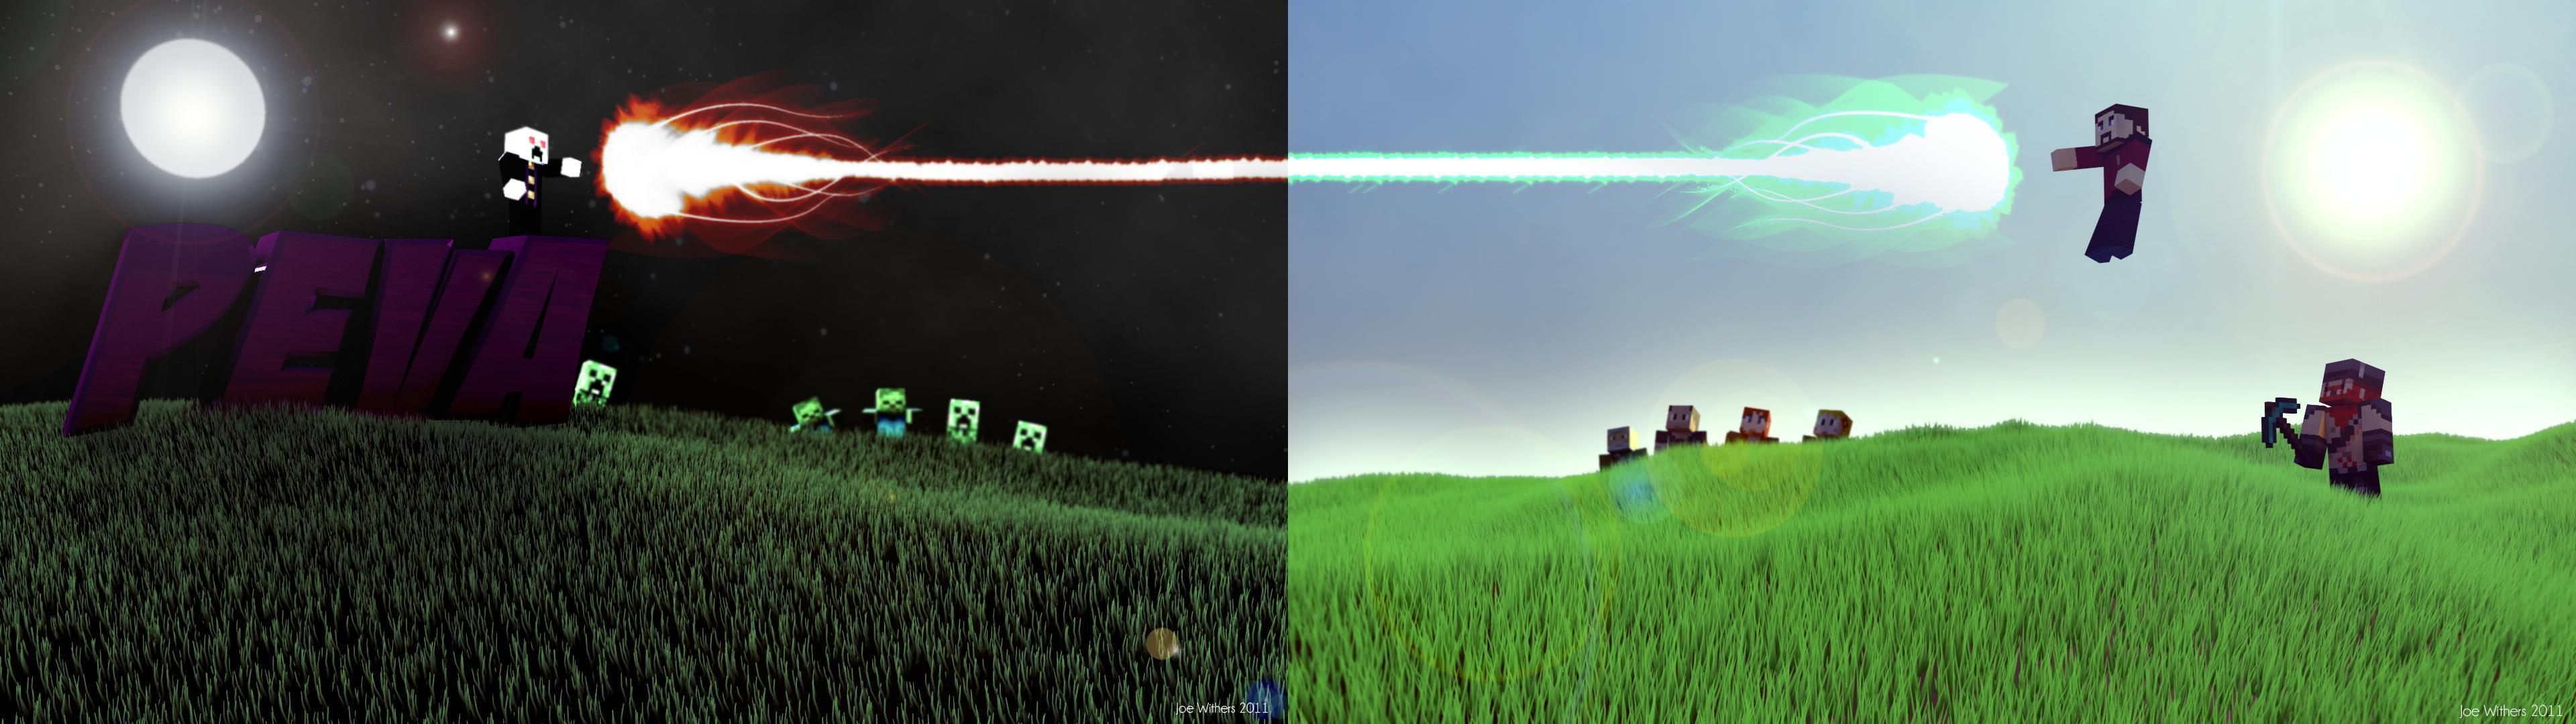 Minecraft Wallpapers For Walls 3840x1080